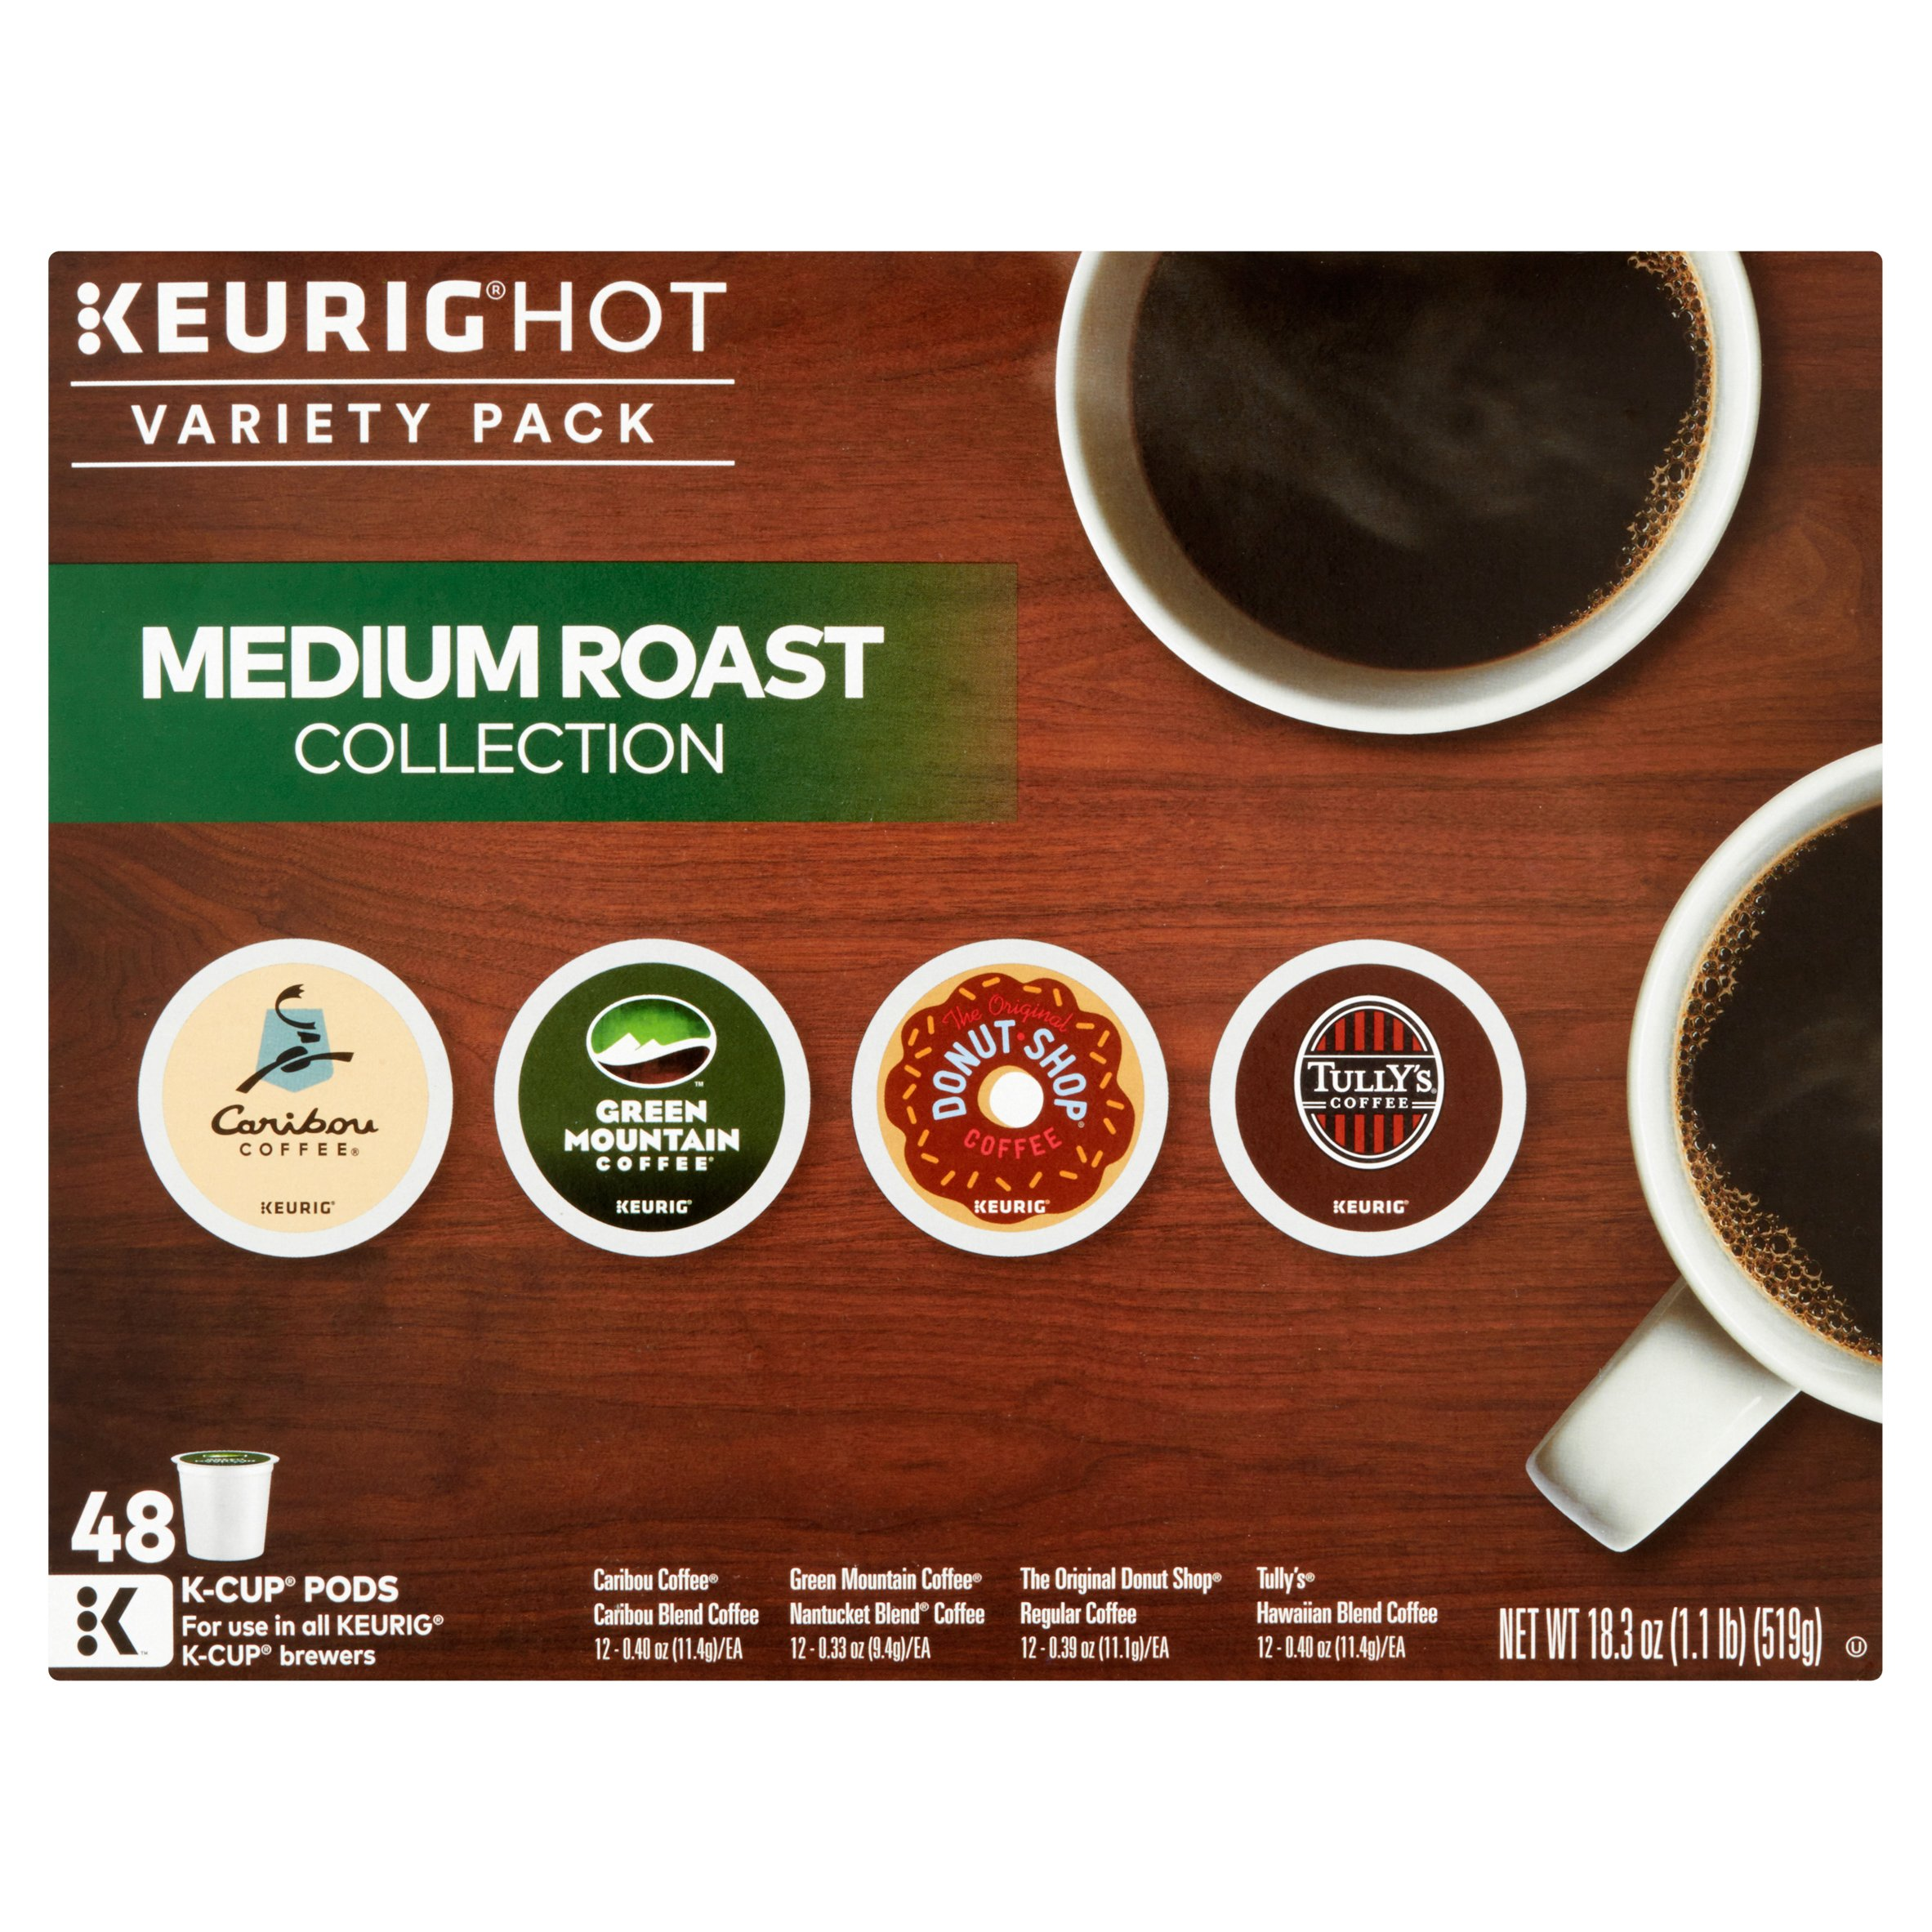 keurig hot variety pack medium roast collection kcup pods 48count 183 oz